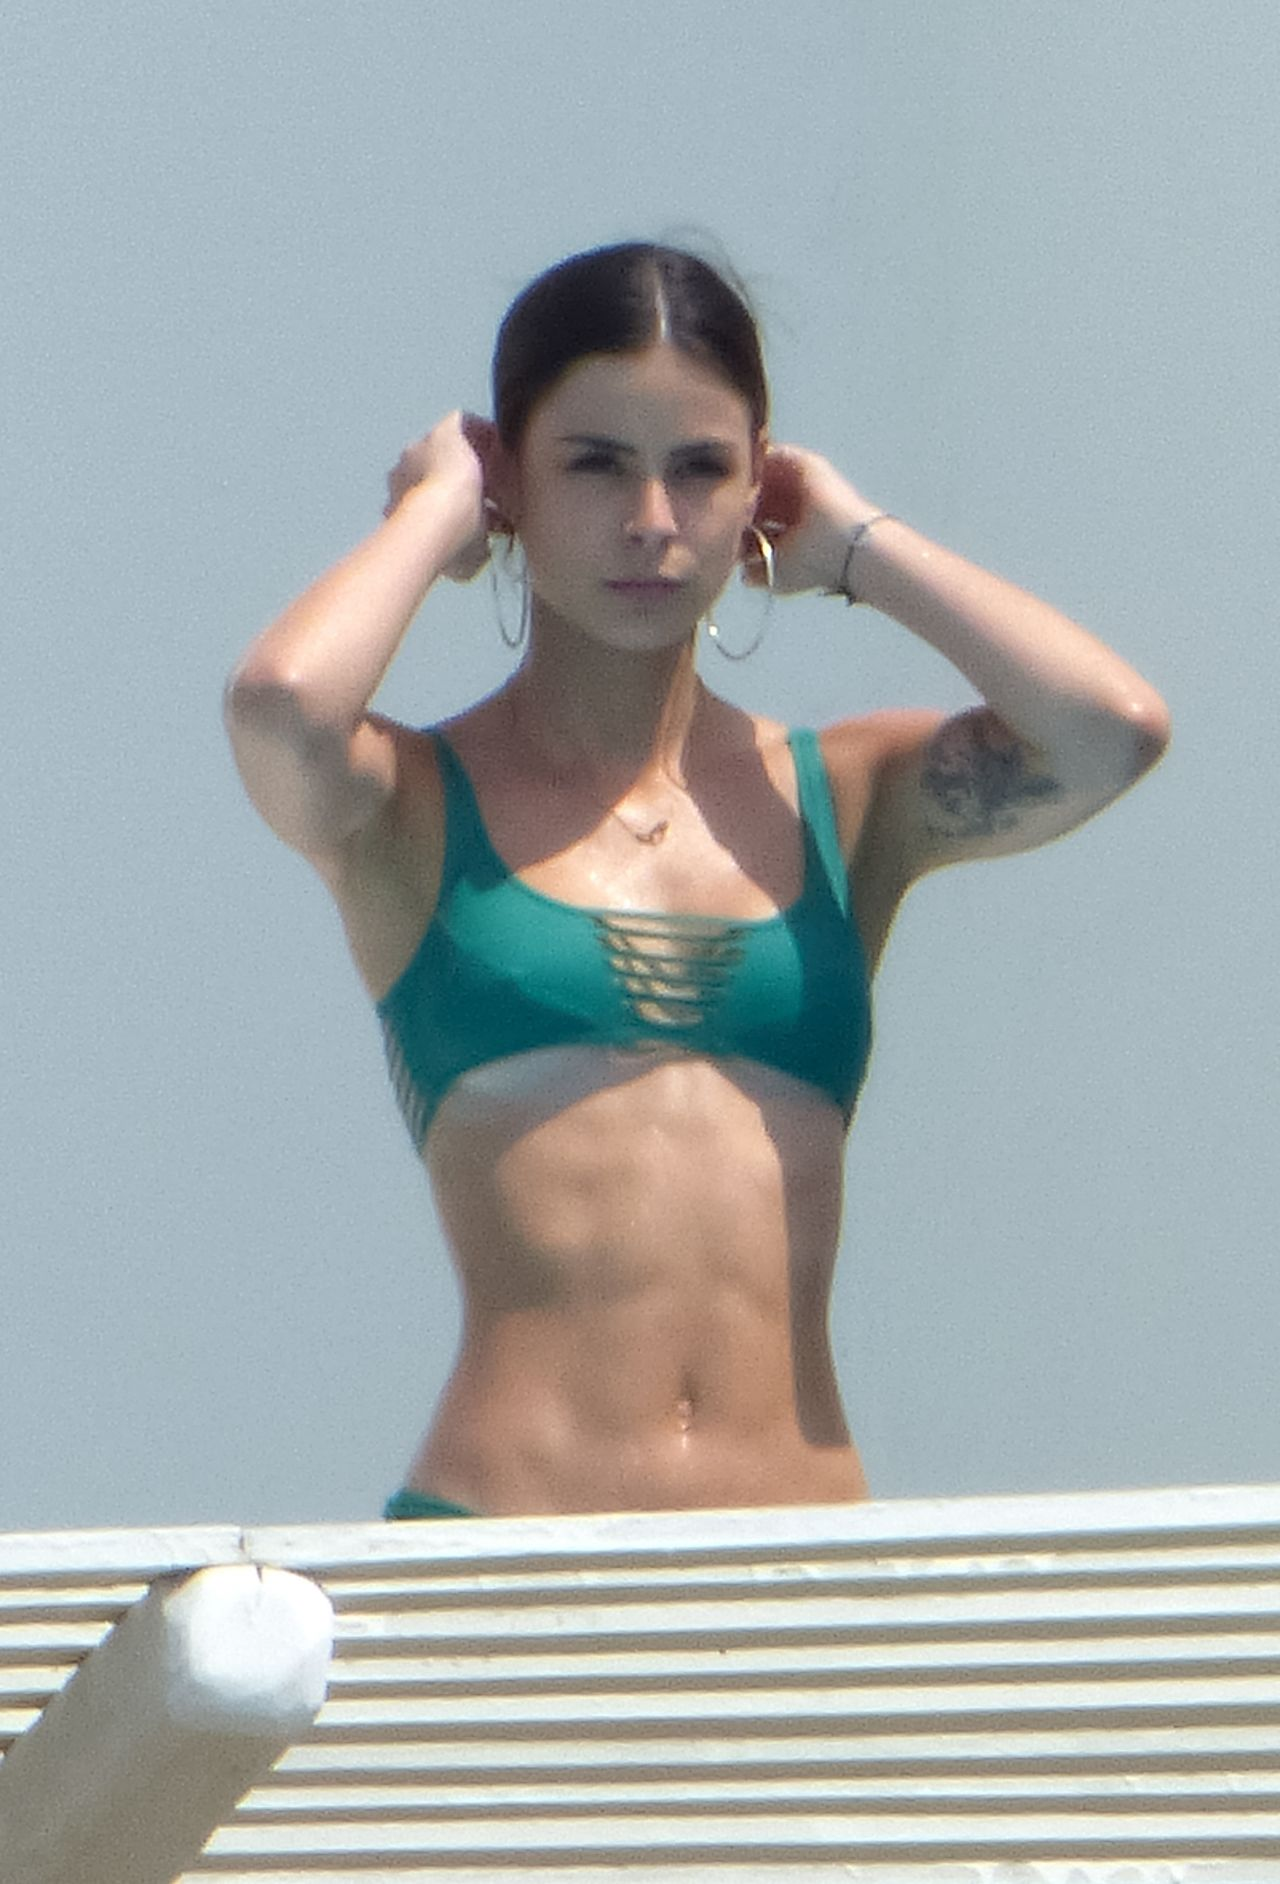 Erotica Swimsuit Lena Meyer-Landrut  nudes (86 pics), Facebook, see through